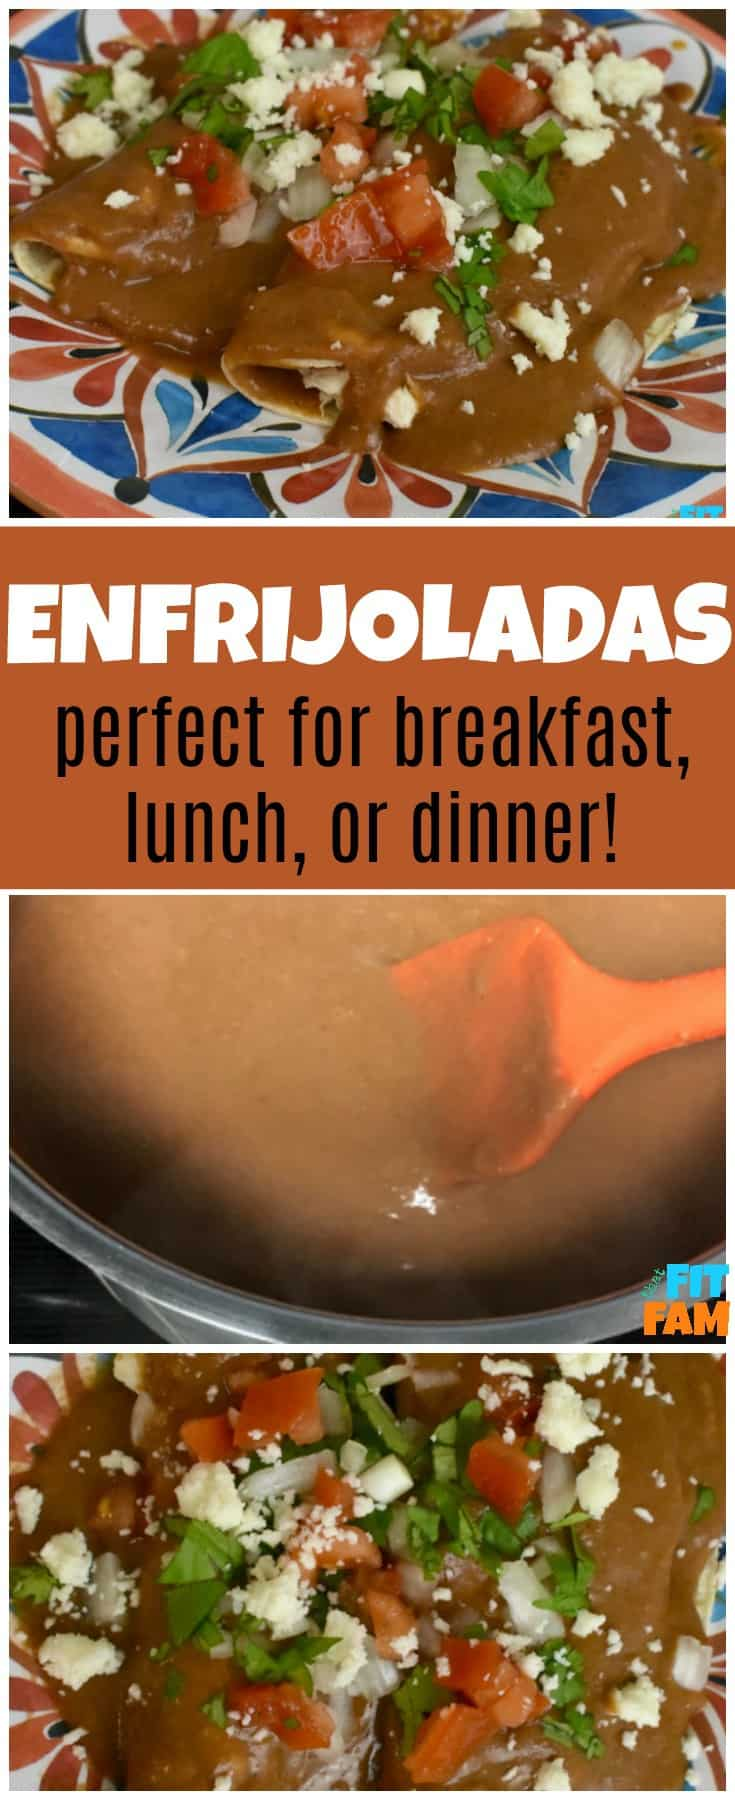 enfrijoladas is an easy authentic Mexican dish you can eat at either breakfast, lunch or dinner. It's healthy and soo good! the ultimate comfort food!